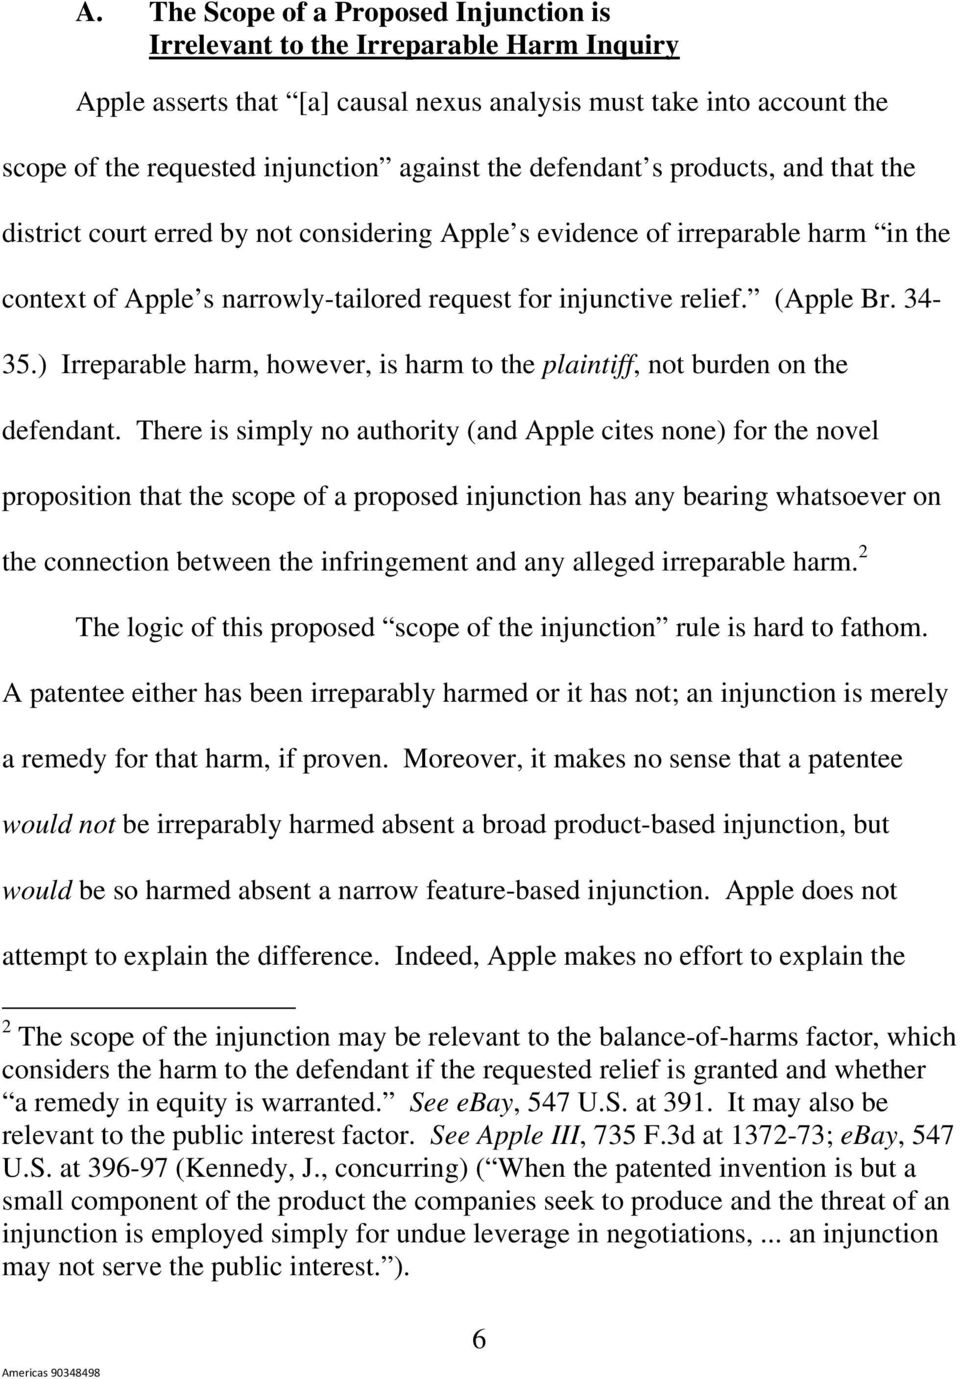 (Apple Br. 34-35.) Irreparable harm, however, is harm to the plaintiff, not burden on the defendant.